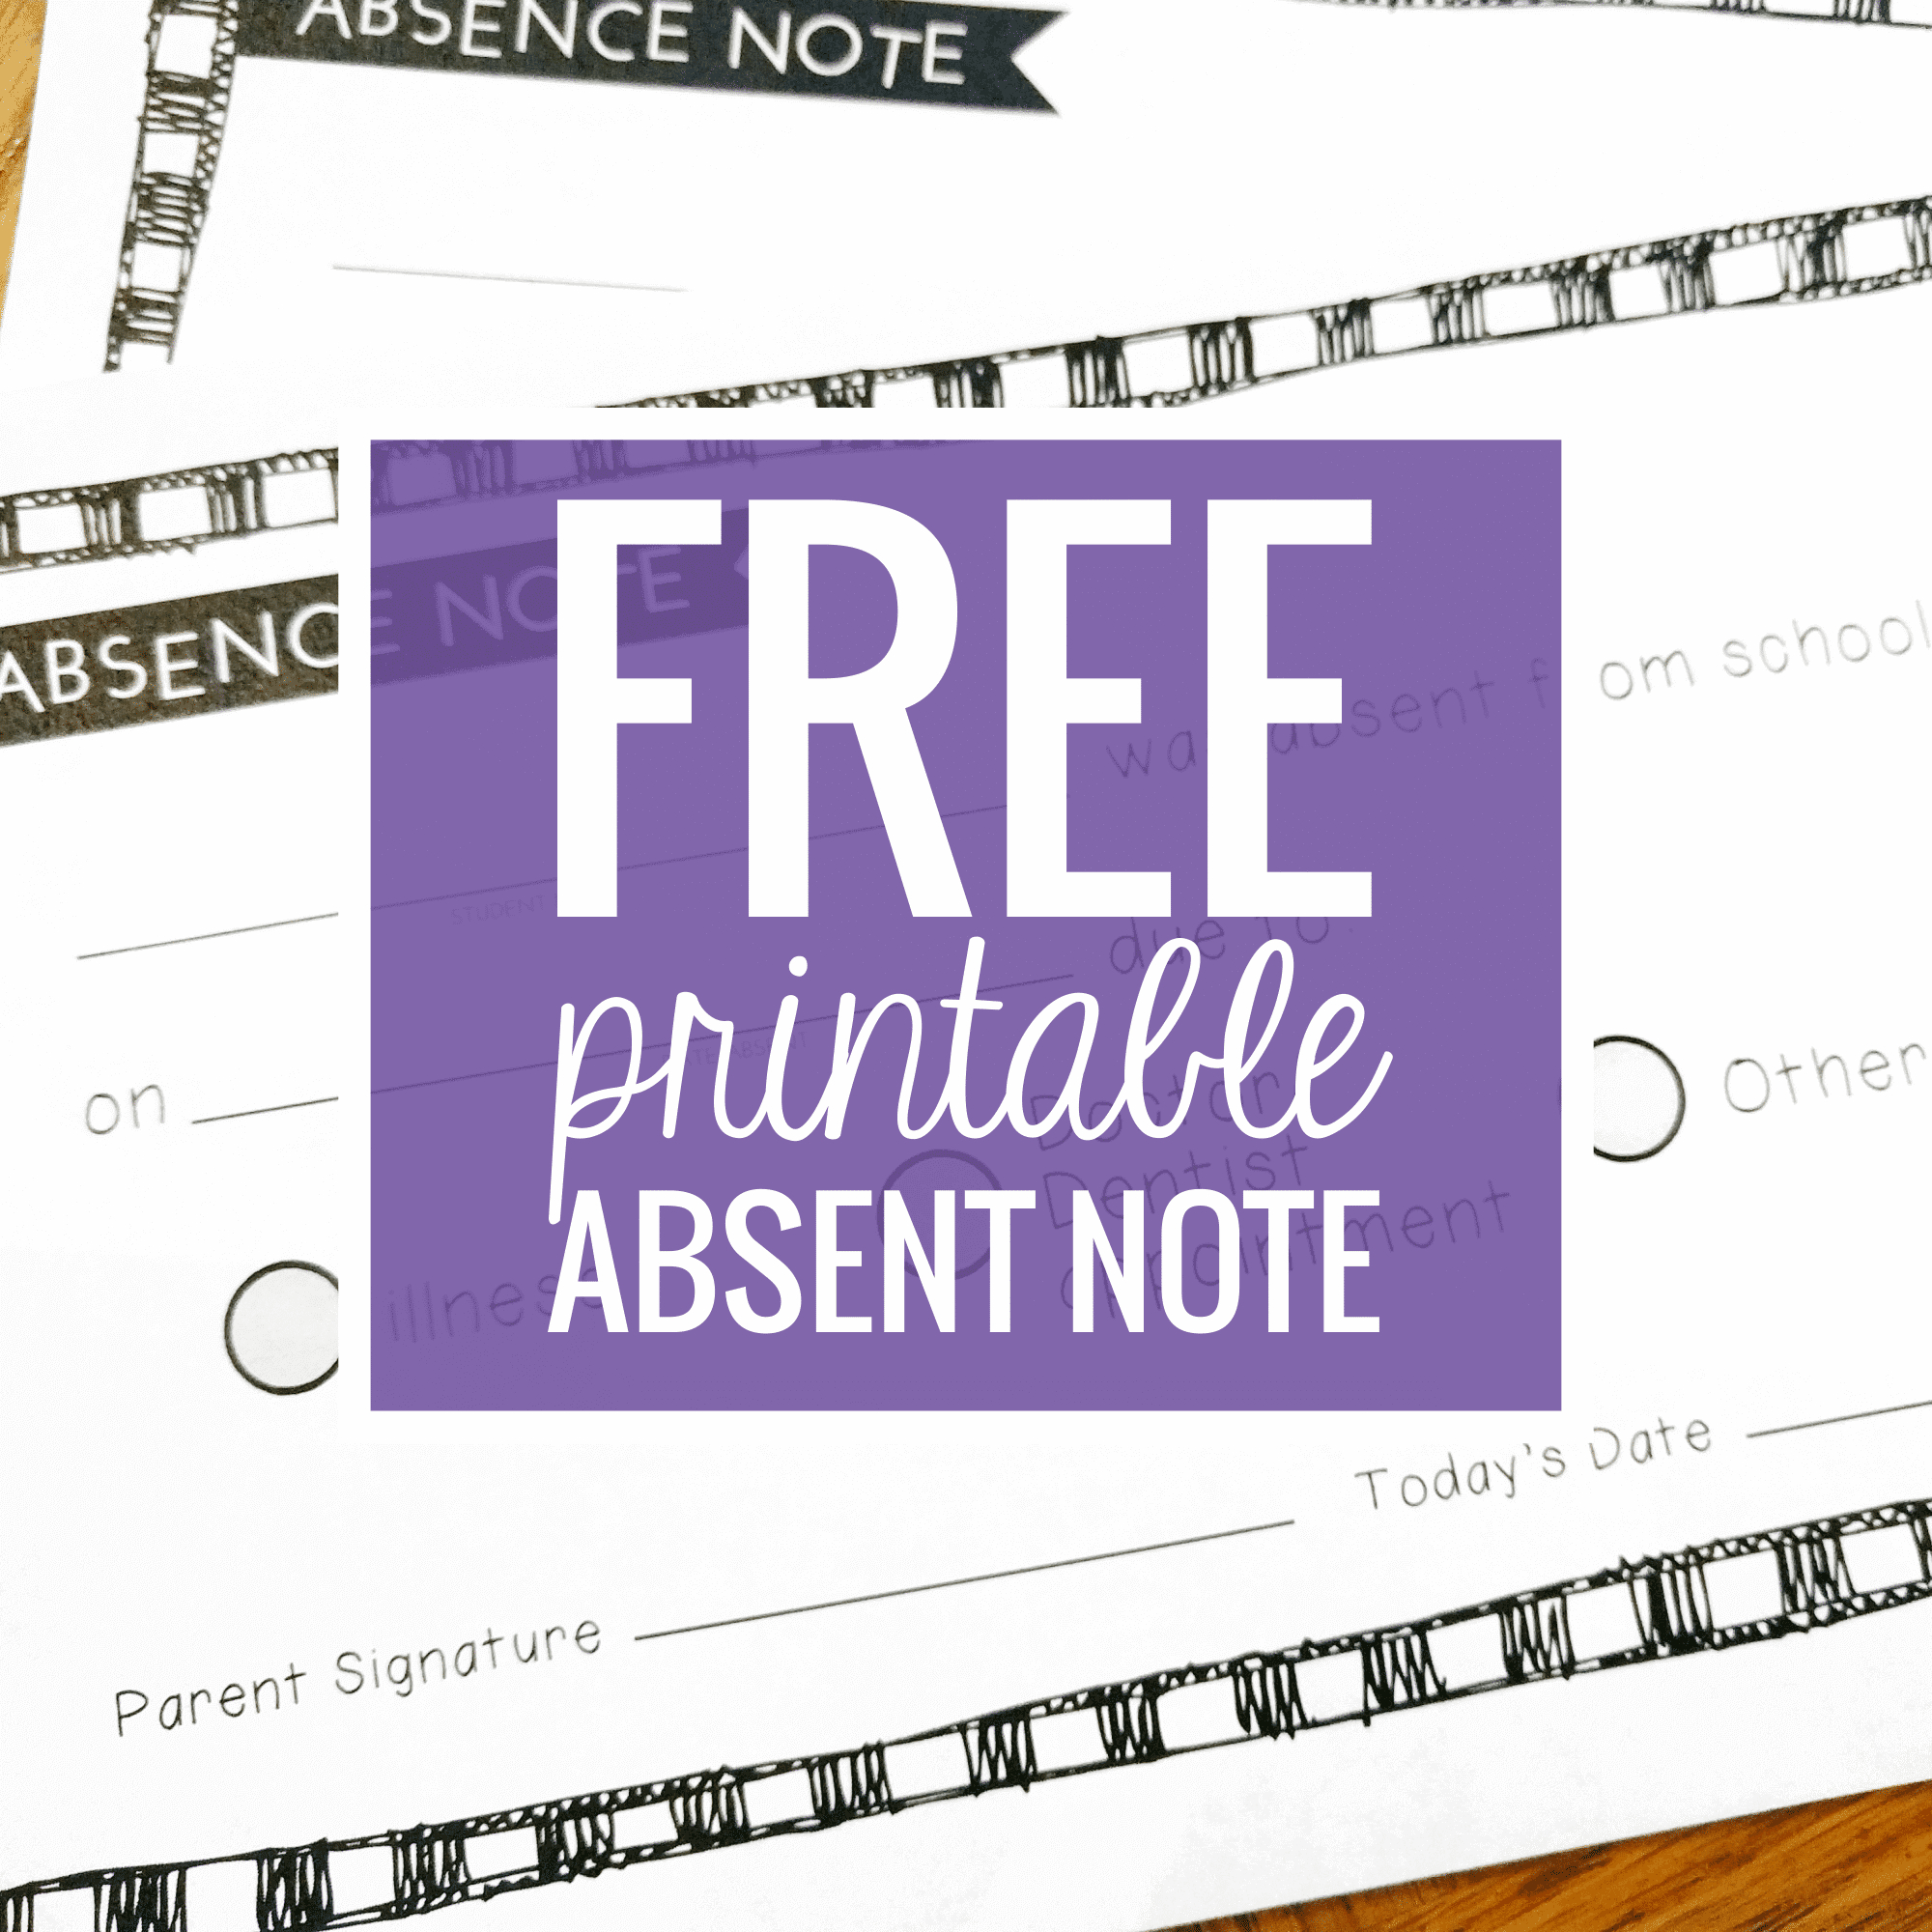 Free Printable Absence Notes For The Elementary Classroom - Teach Junkie - Free Printable Teacher Notes To Parents